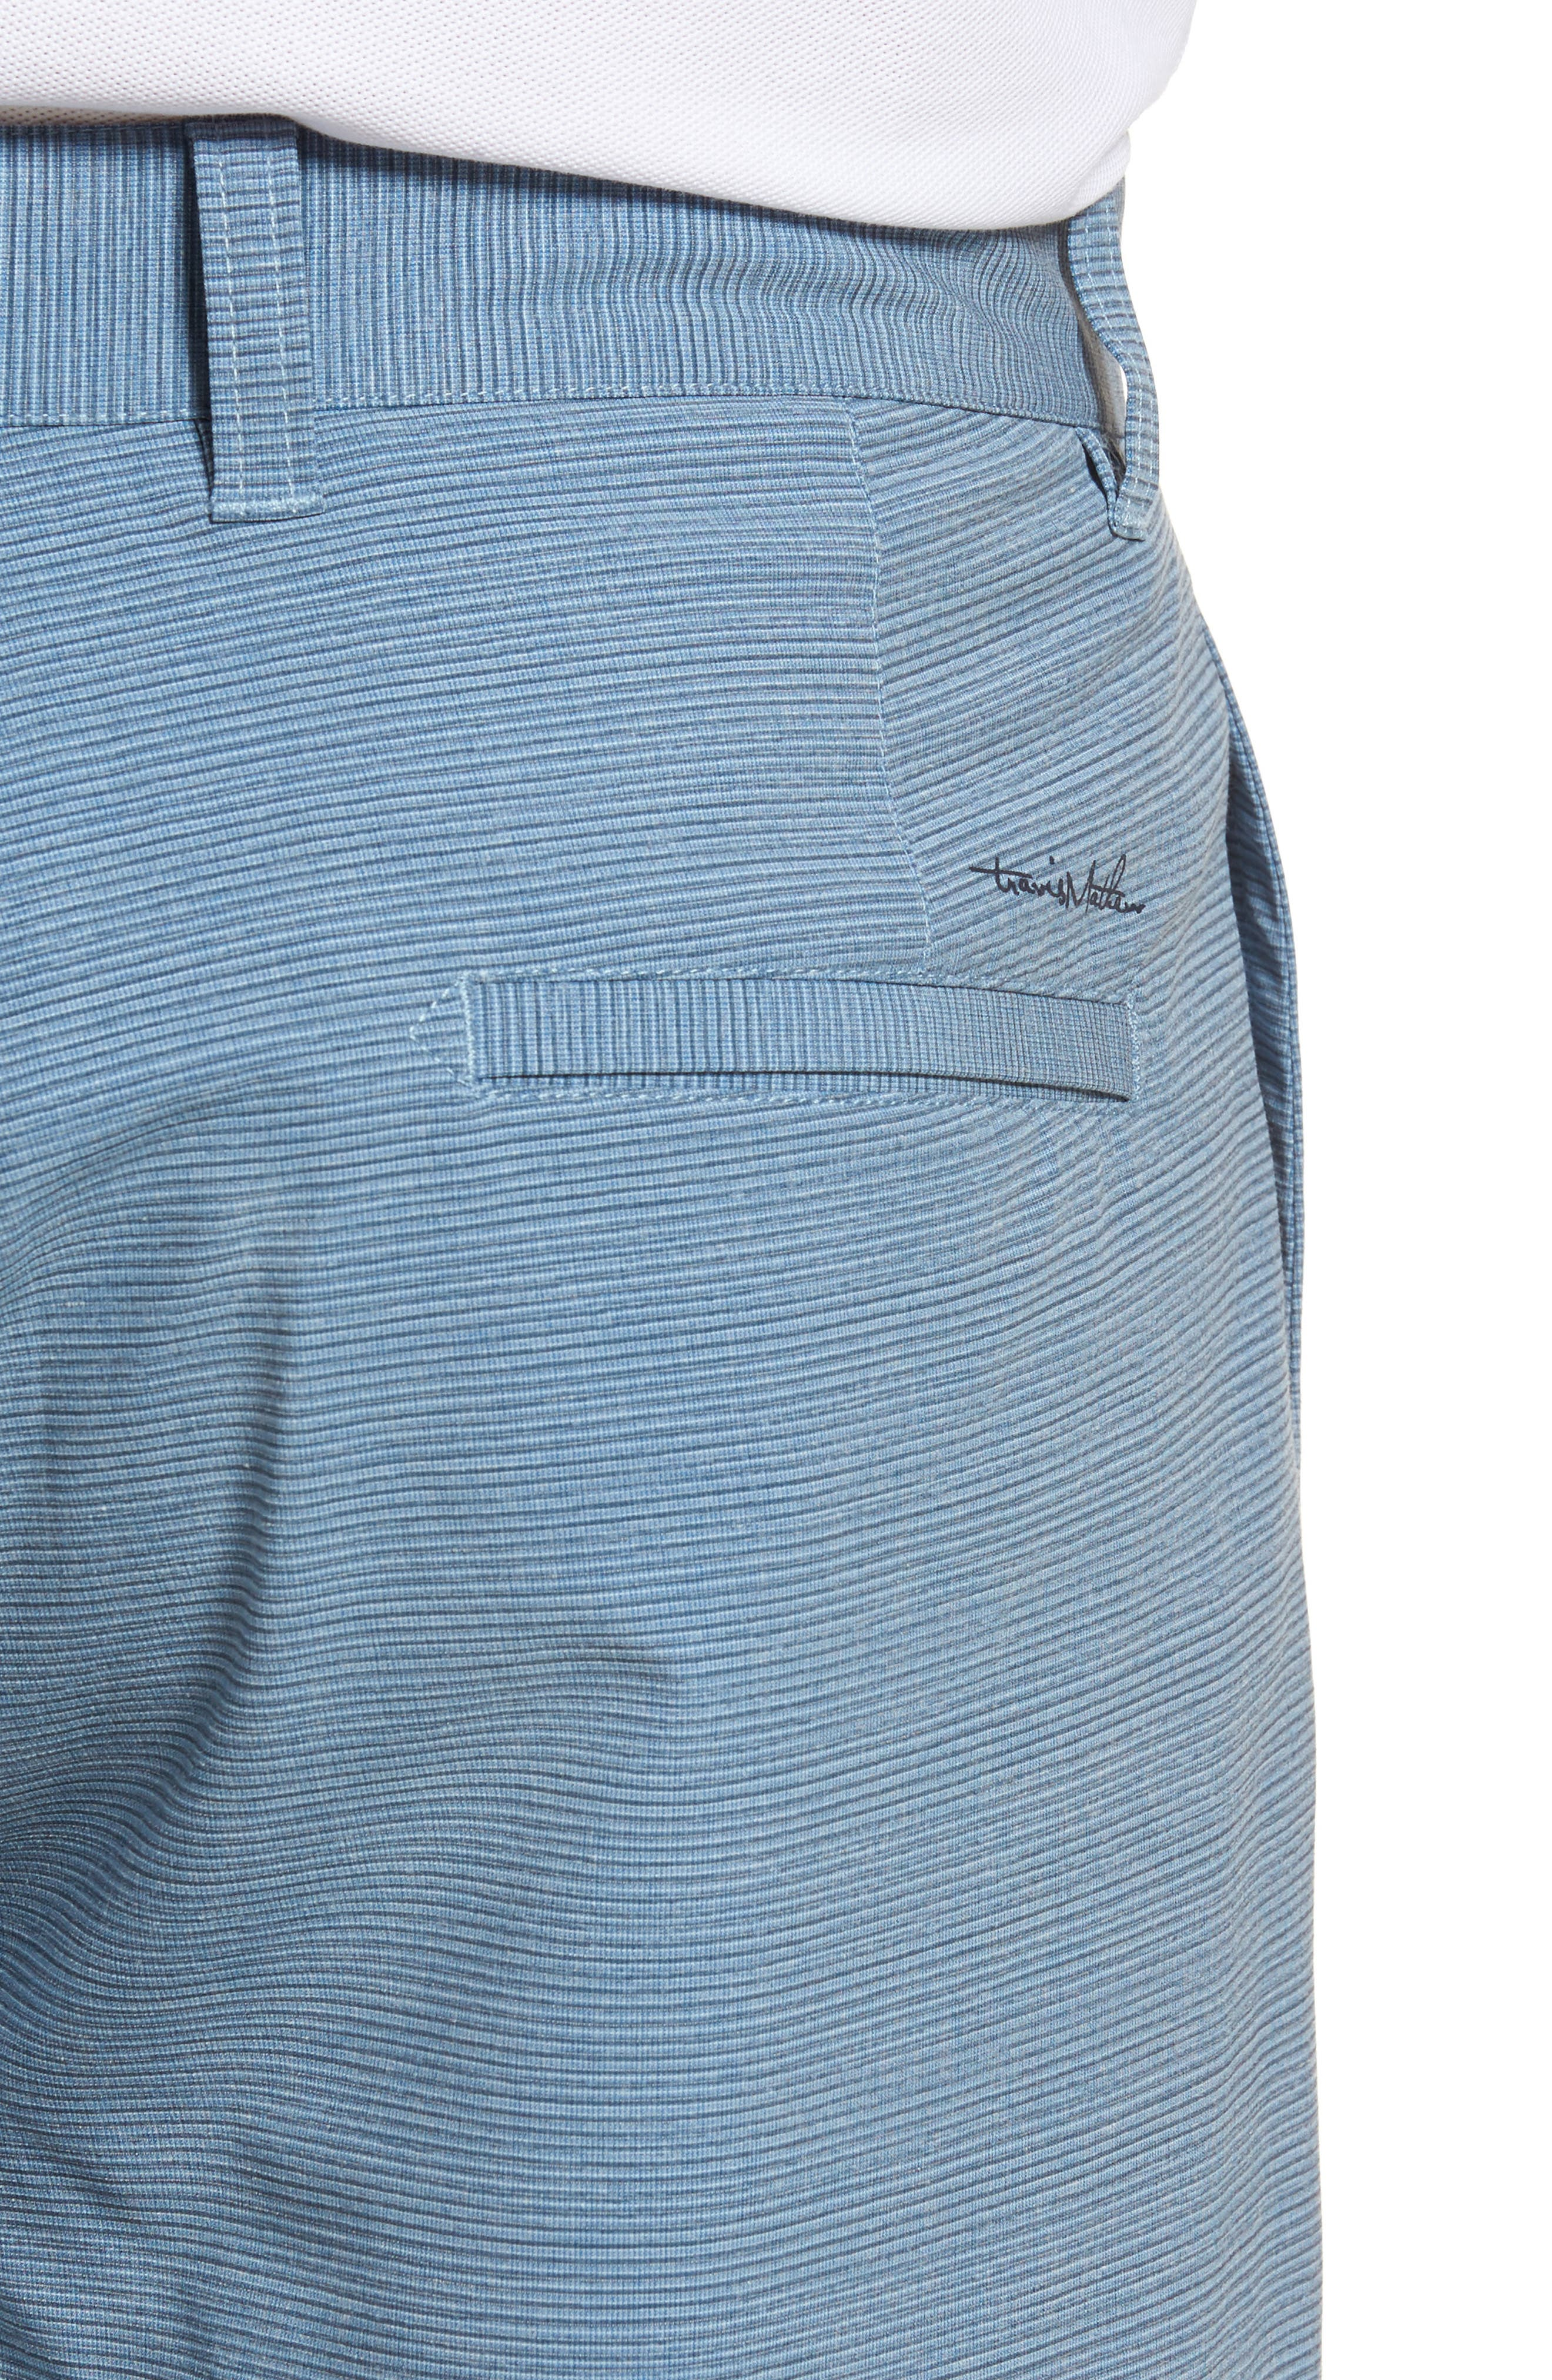 Toro Regular Fit Microstripe Shorts,                             Alternate thumbnail 4, color,                             French Blue/ Micro Chip